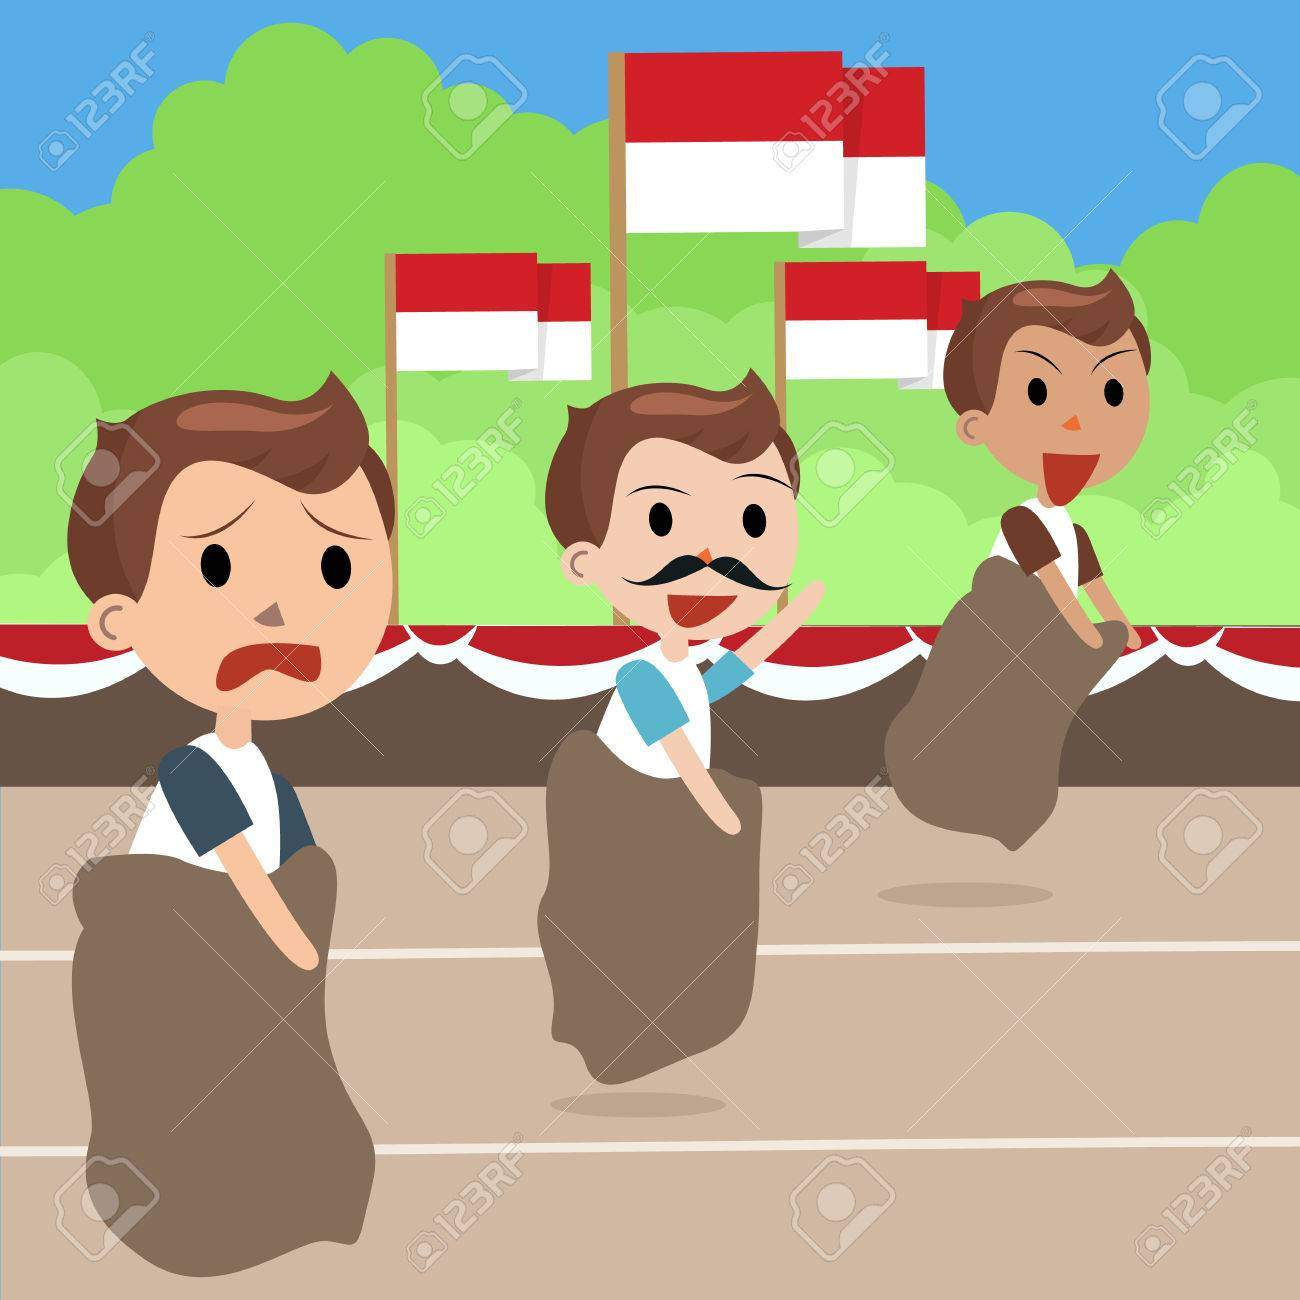 Indonesia traditional special games during independence day, man racing inside bag vector - 60187375